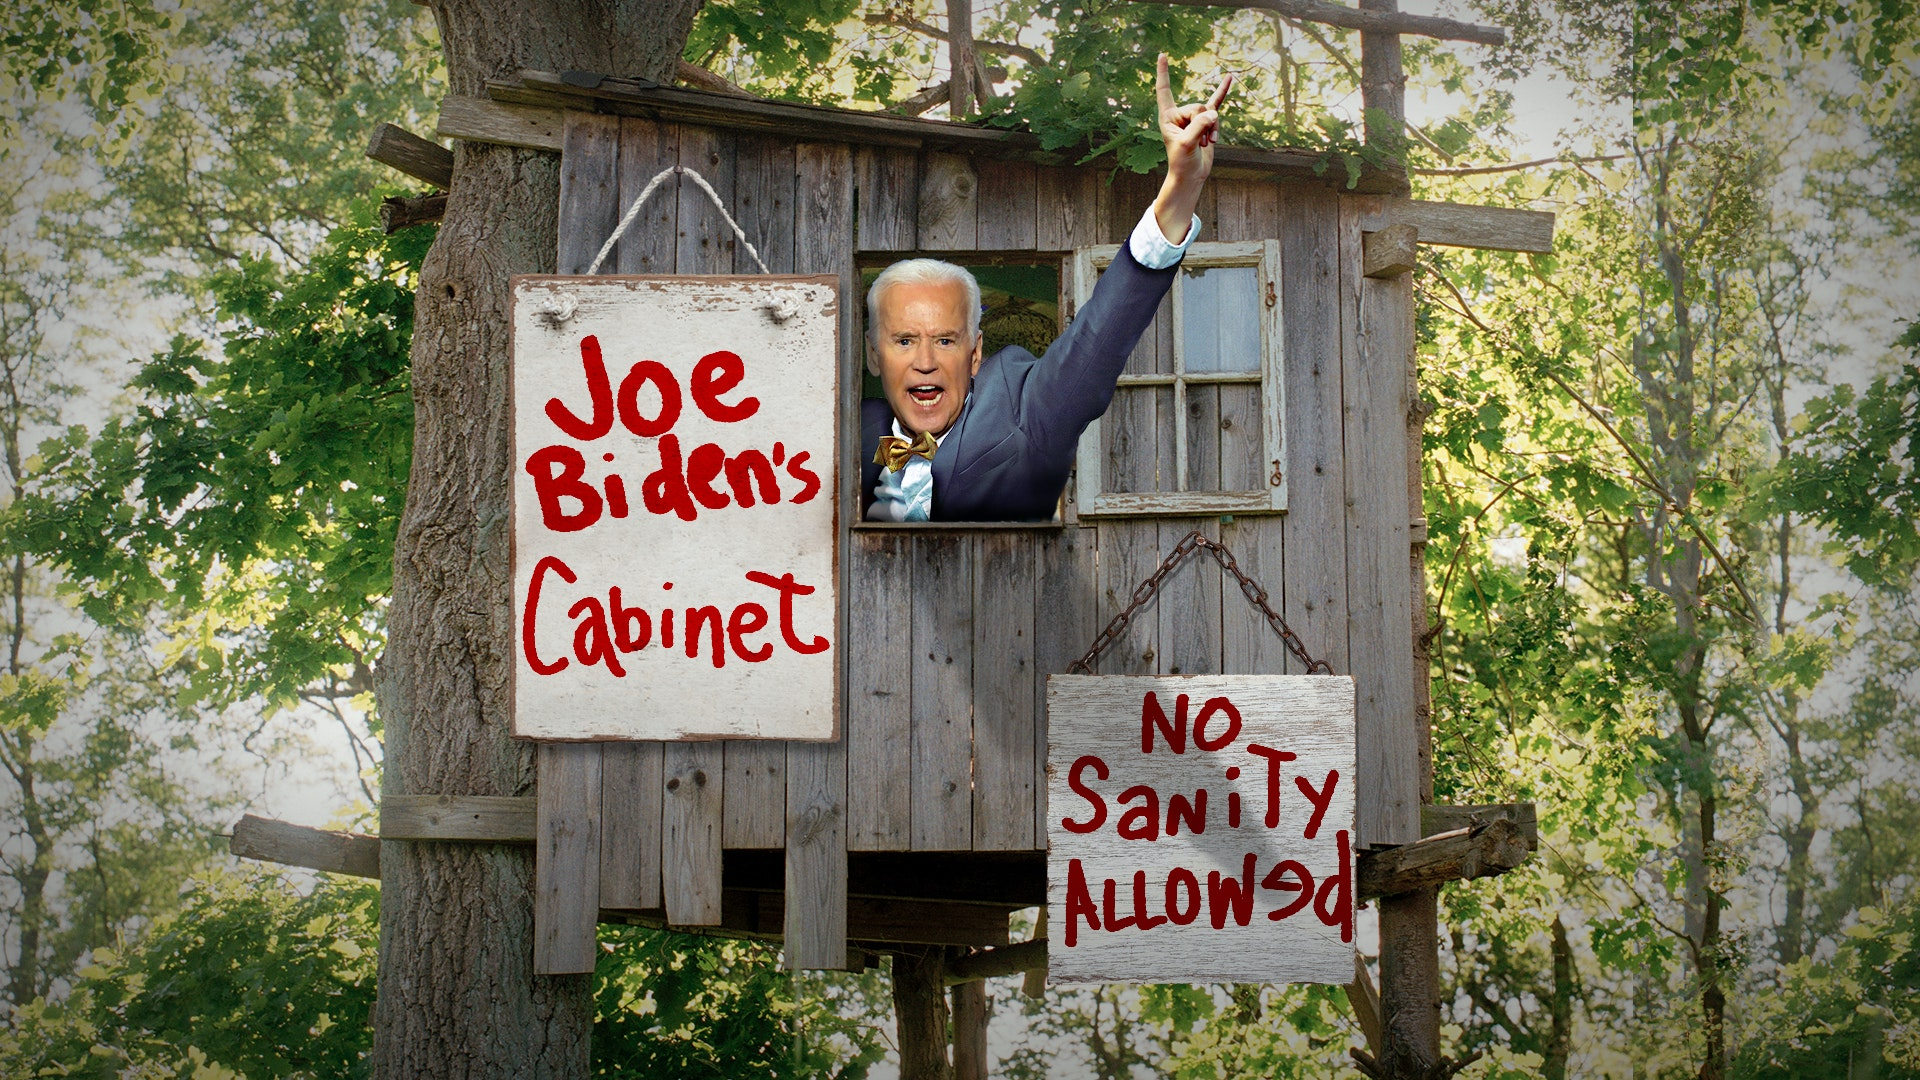 Ep. 634 - Biden Fills His Cabinet With Bigots And Crackpots